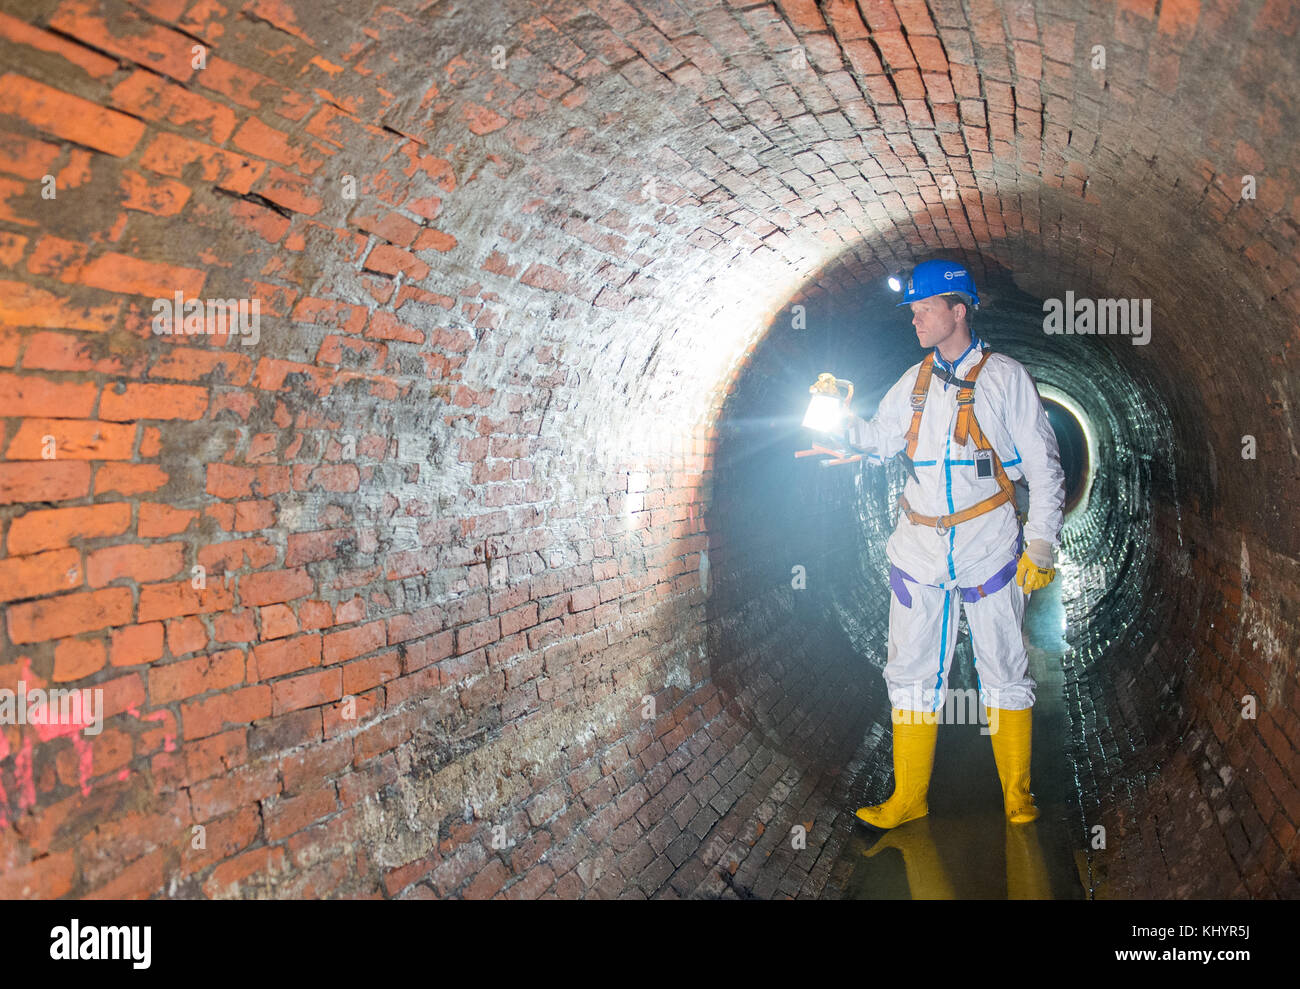 Oliver Harten of 'Hamburg Wasser' (Hamburg waterworks) checks a sewer that is being modernised during a - Stock Image